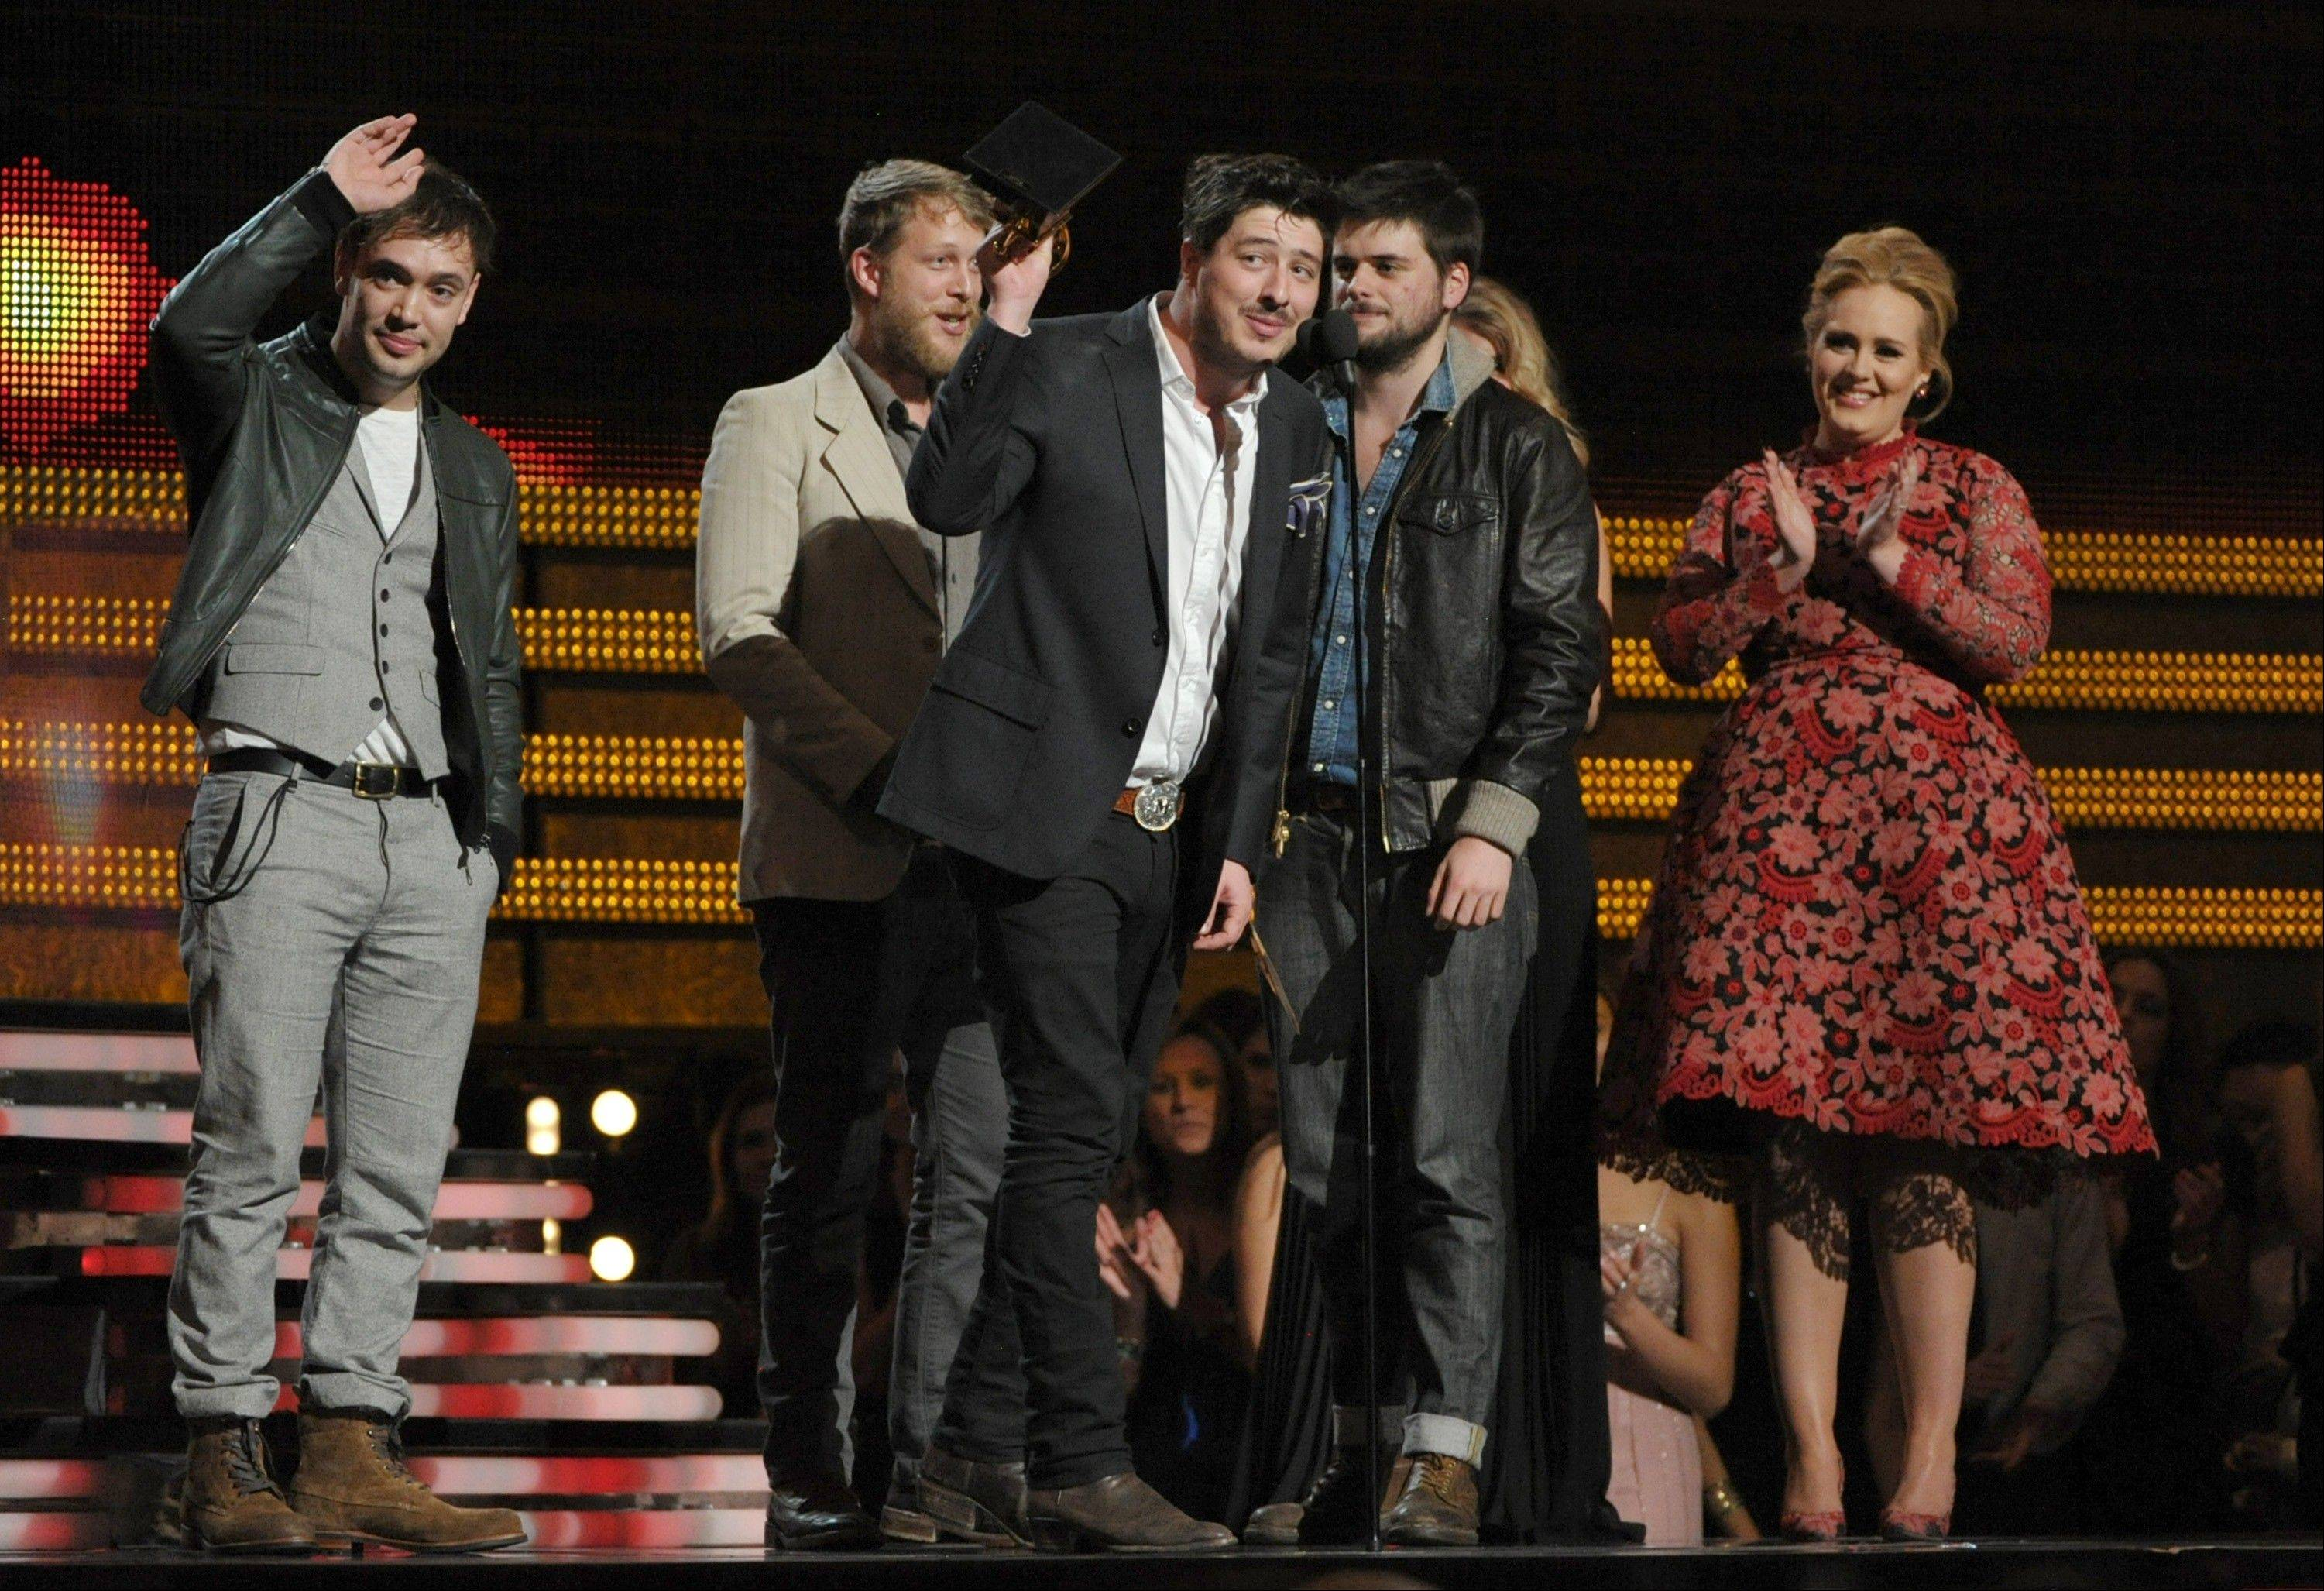 "Mumford & Sons, from left, Ben Lovett, Ted Dwayne, Marcus Mumford and Country Winston Marshall accept the award for album of the year for ""Babel"" at the 55th annual Grammy Awards on Sunday, Feb. 10, 2013, in Los Angeles. Presenter Adele, right, claps."